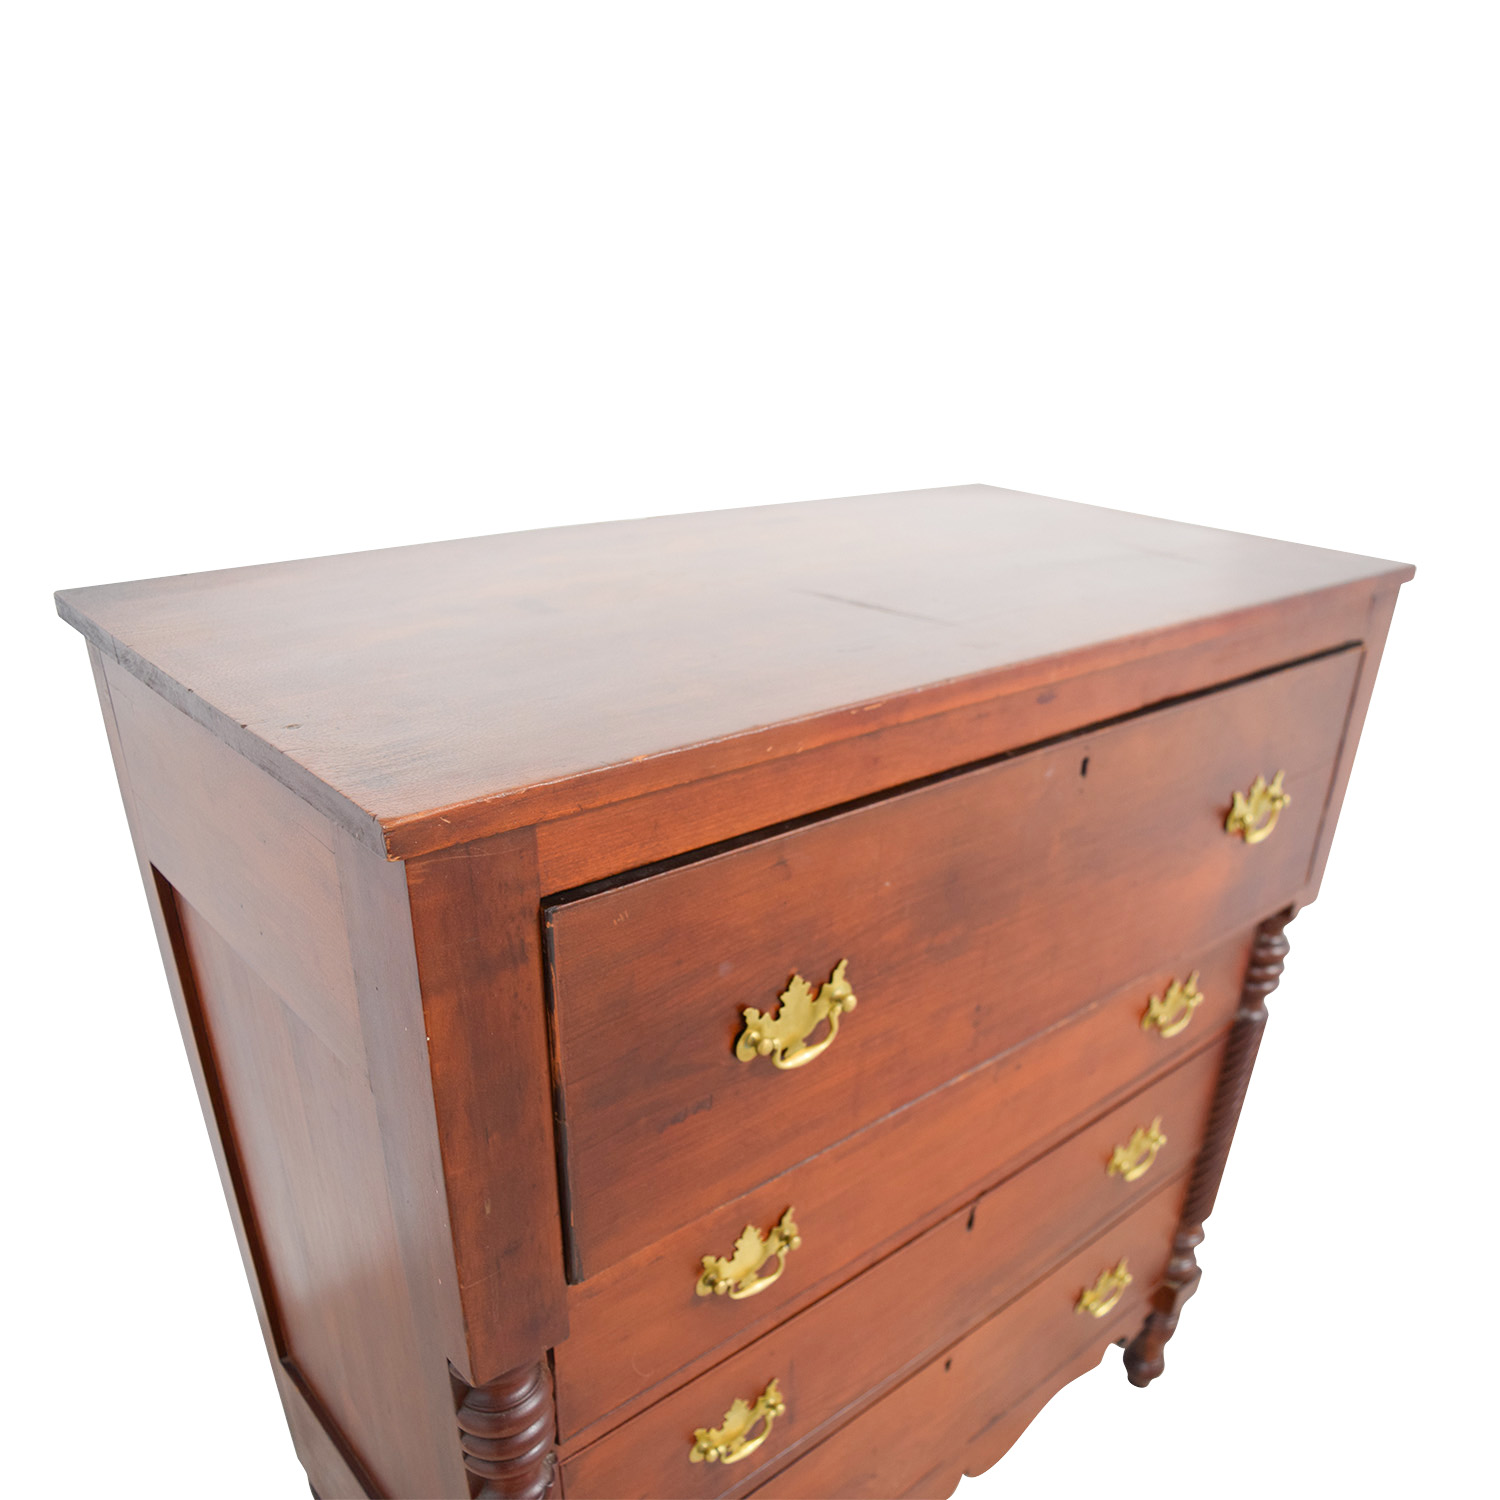 shop Antique American Empire Cherry Four-Drawer Dresser Dressers